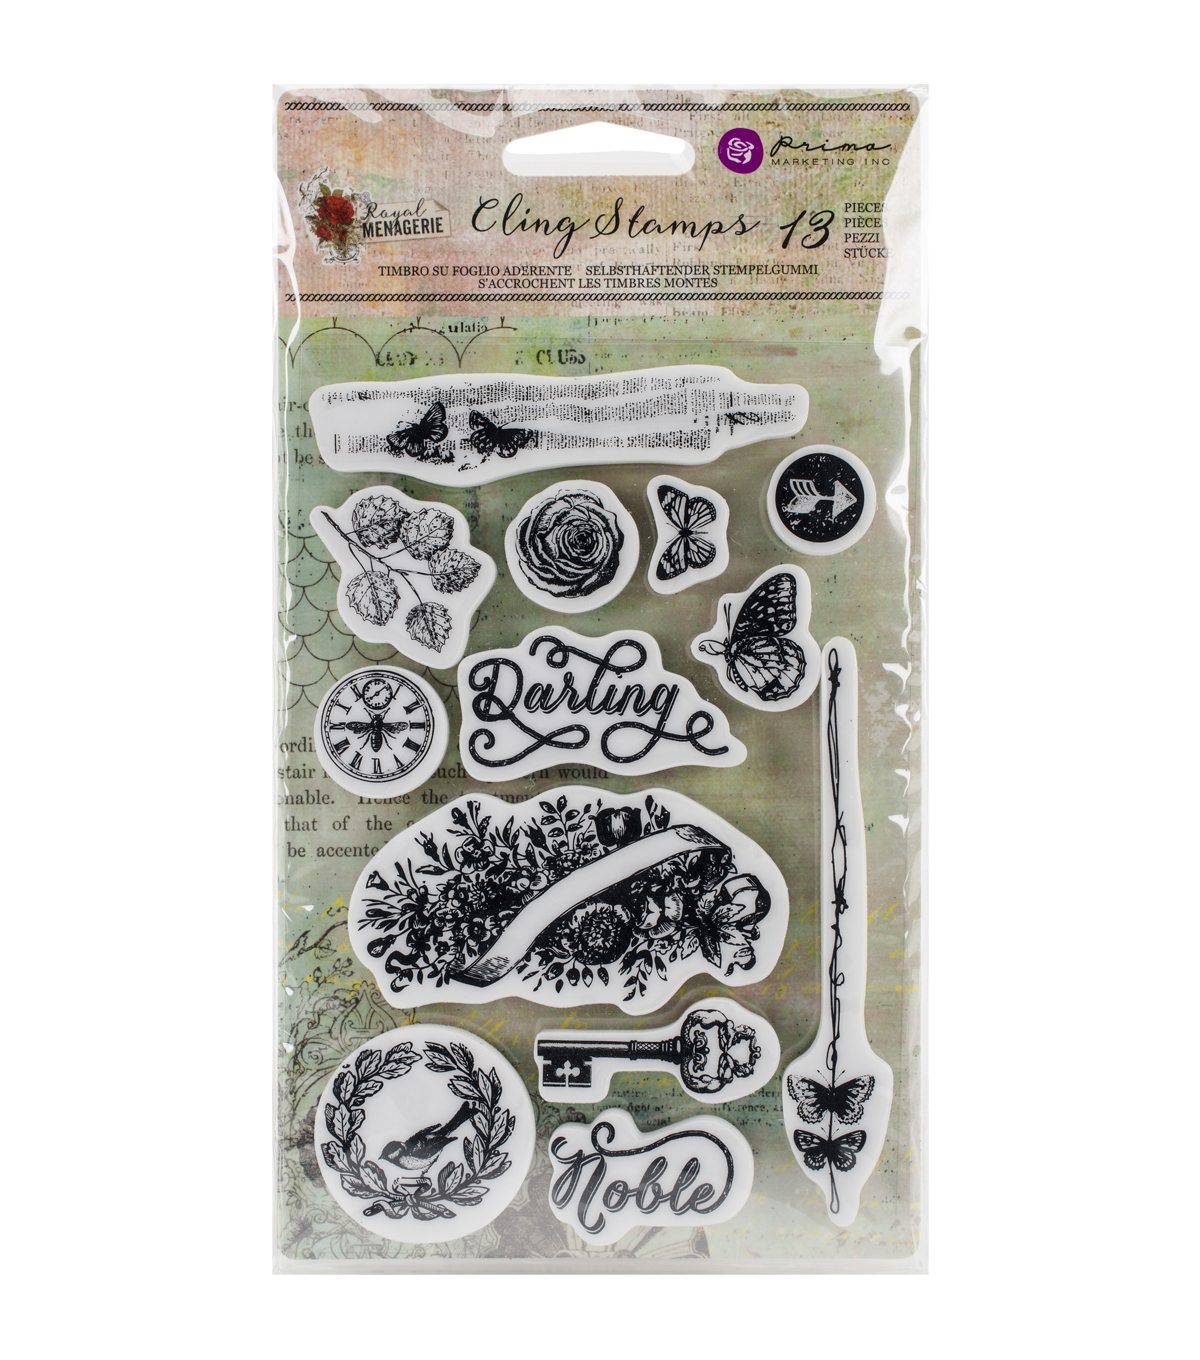 Prima Marketing Royal Menagerie Cling Rubber Stamps-Darling/Noble